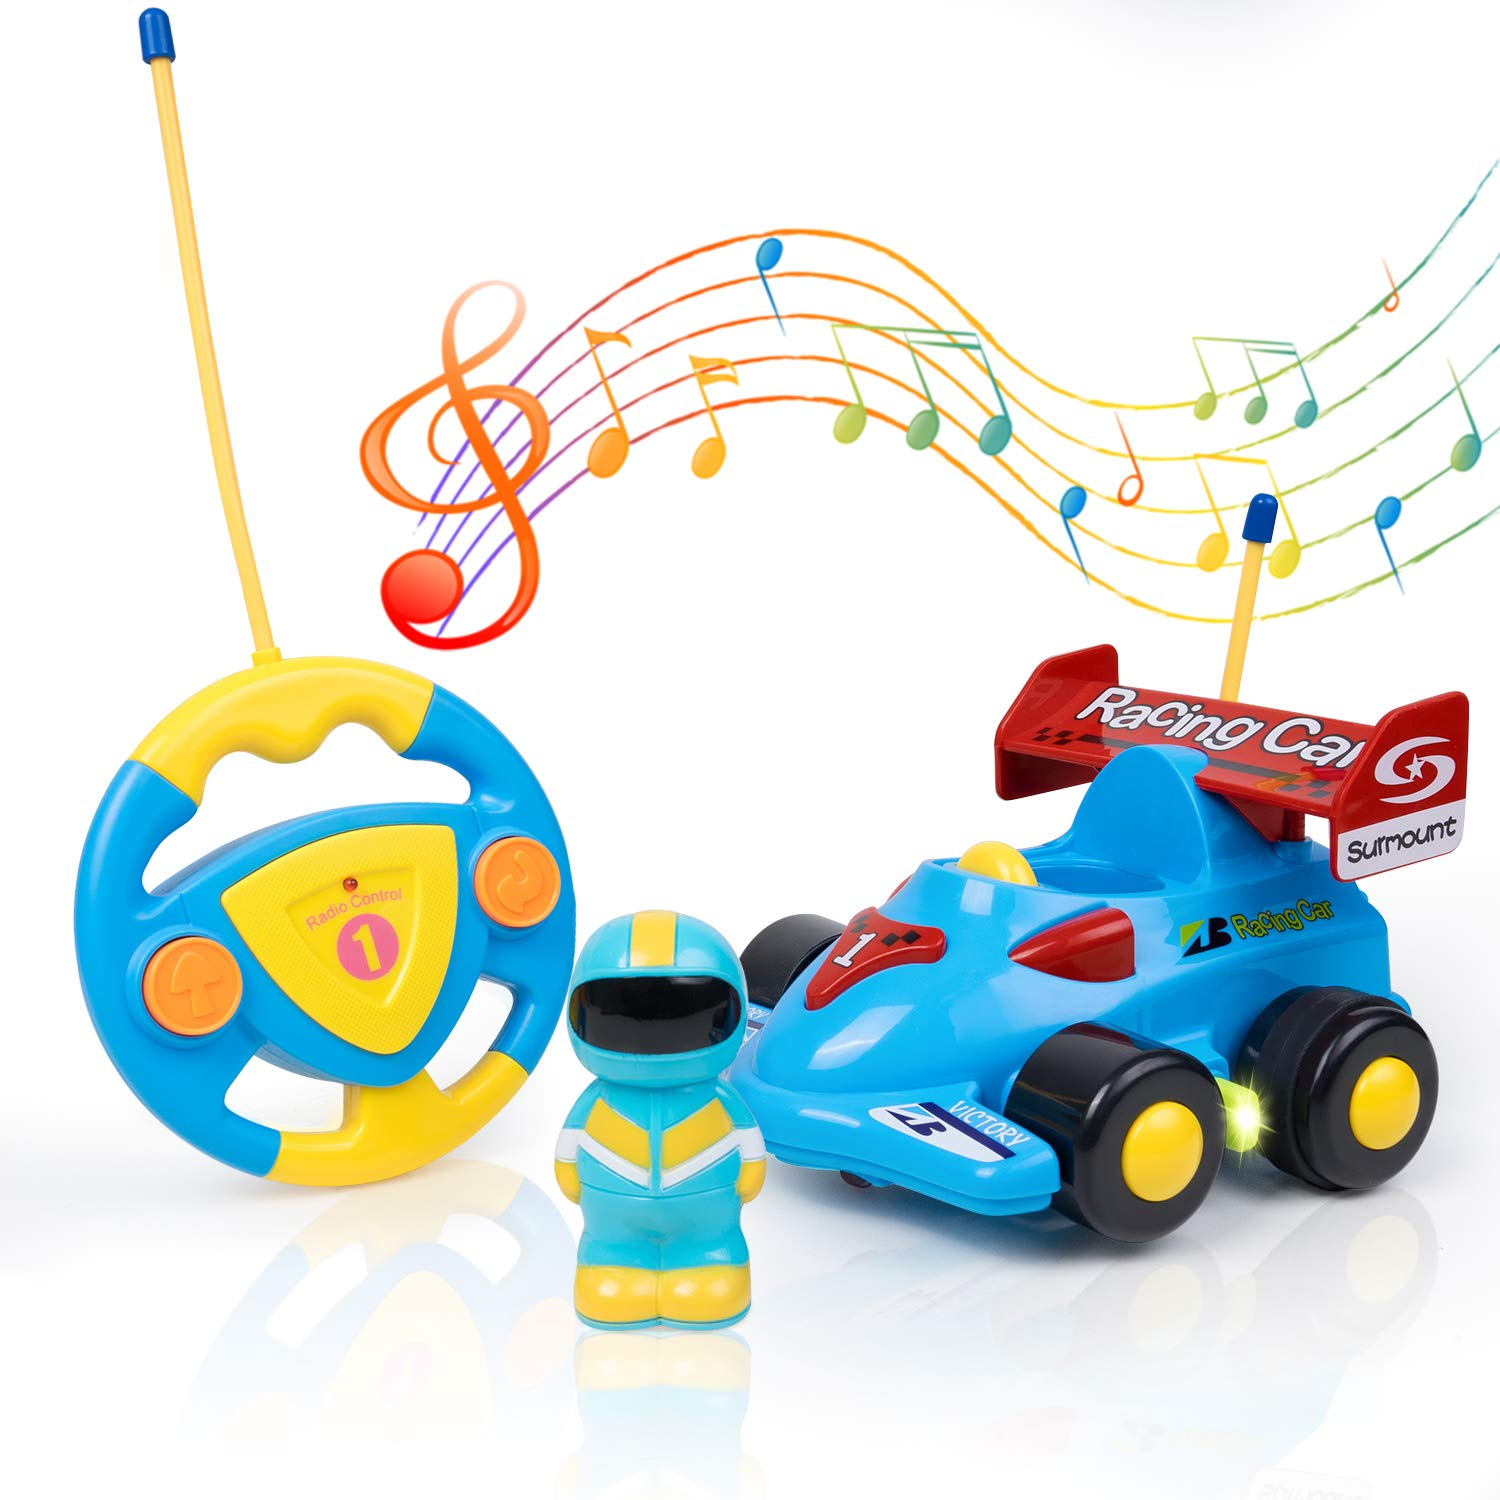 SGILE Race Car Remote Control Train Toy, Kids Birthday Gift Present for Toddlers Kids,Blue